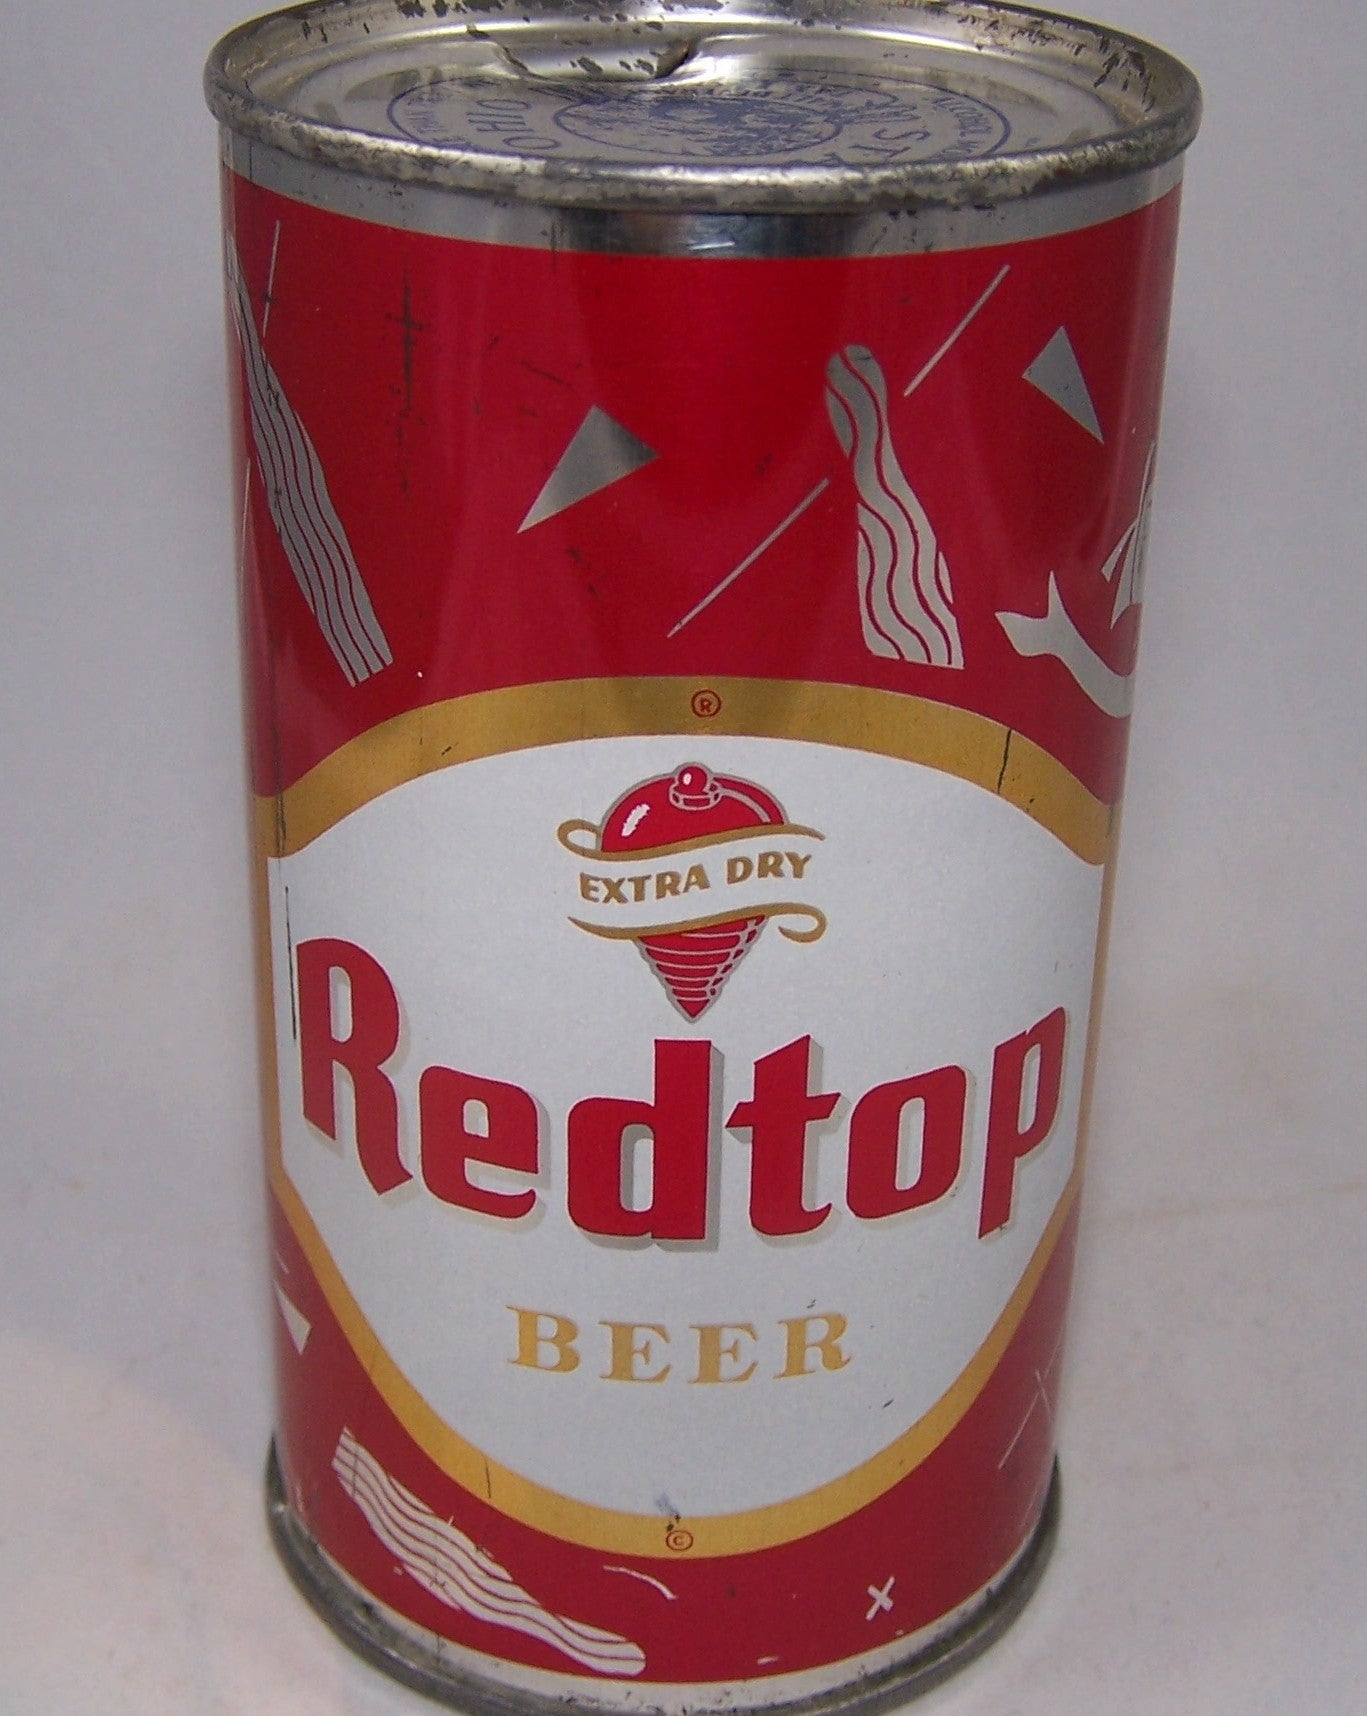 Redtop Beer (Bowling) USBC 119-40, Grade 1 to 1/1+Sold 6/18/16